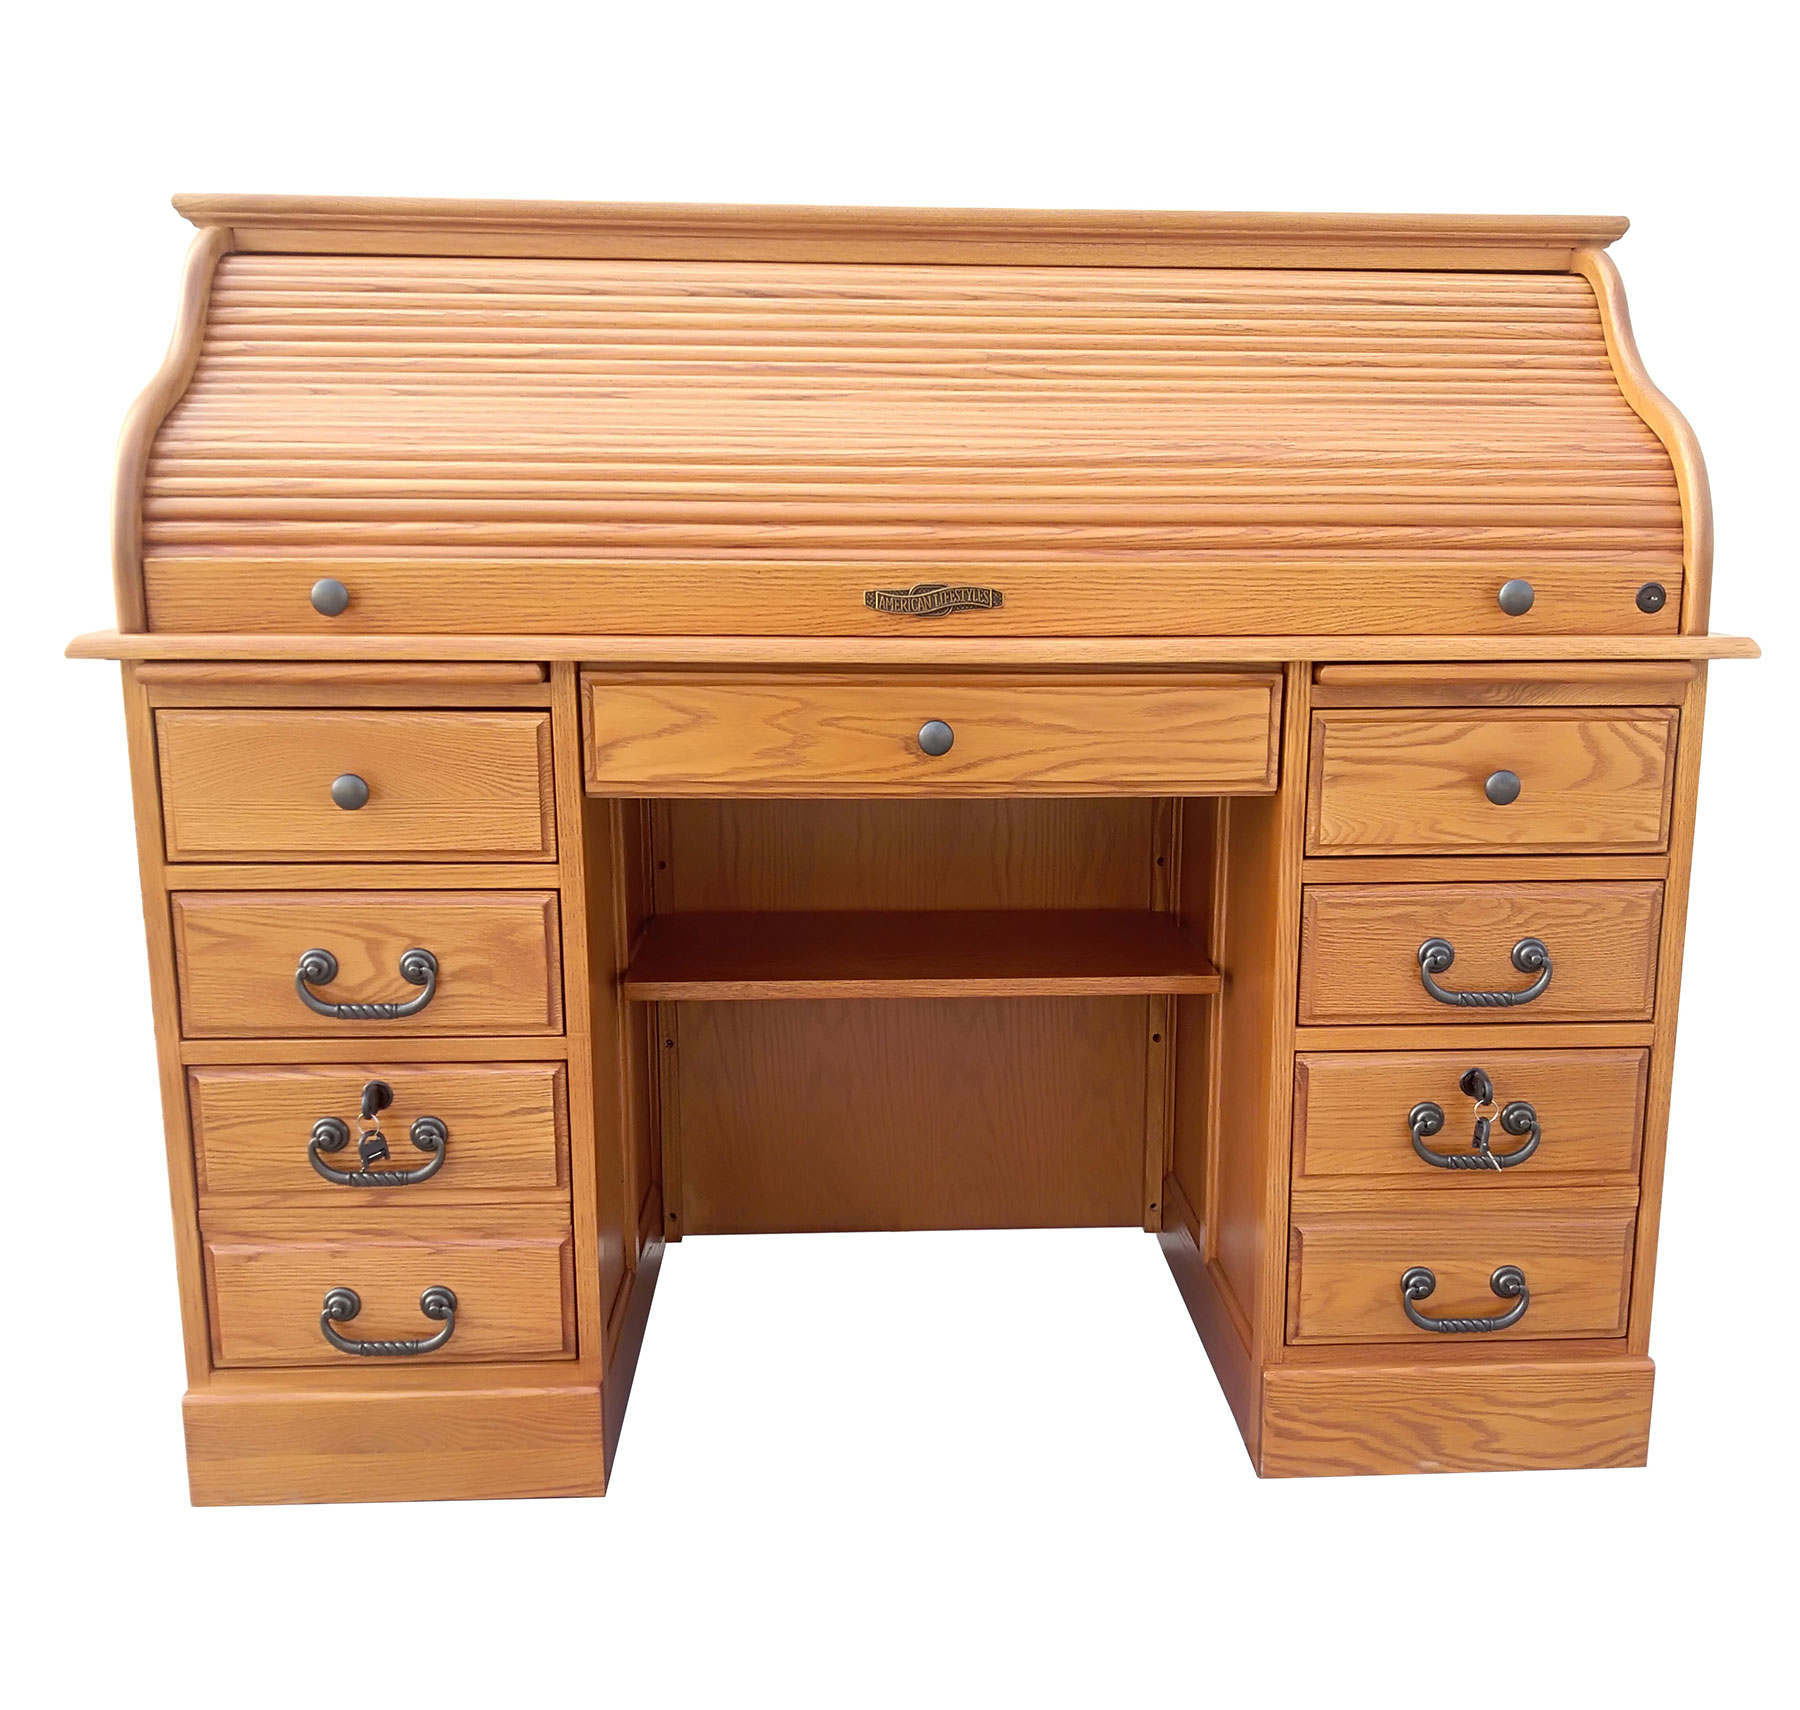 "54"" Roll Top Desk - TENNESSEE ENTERPRISES, INC."